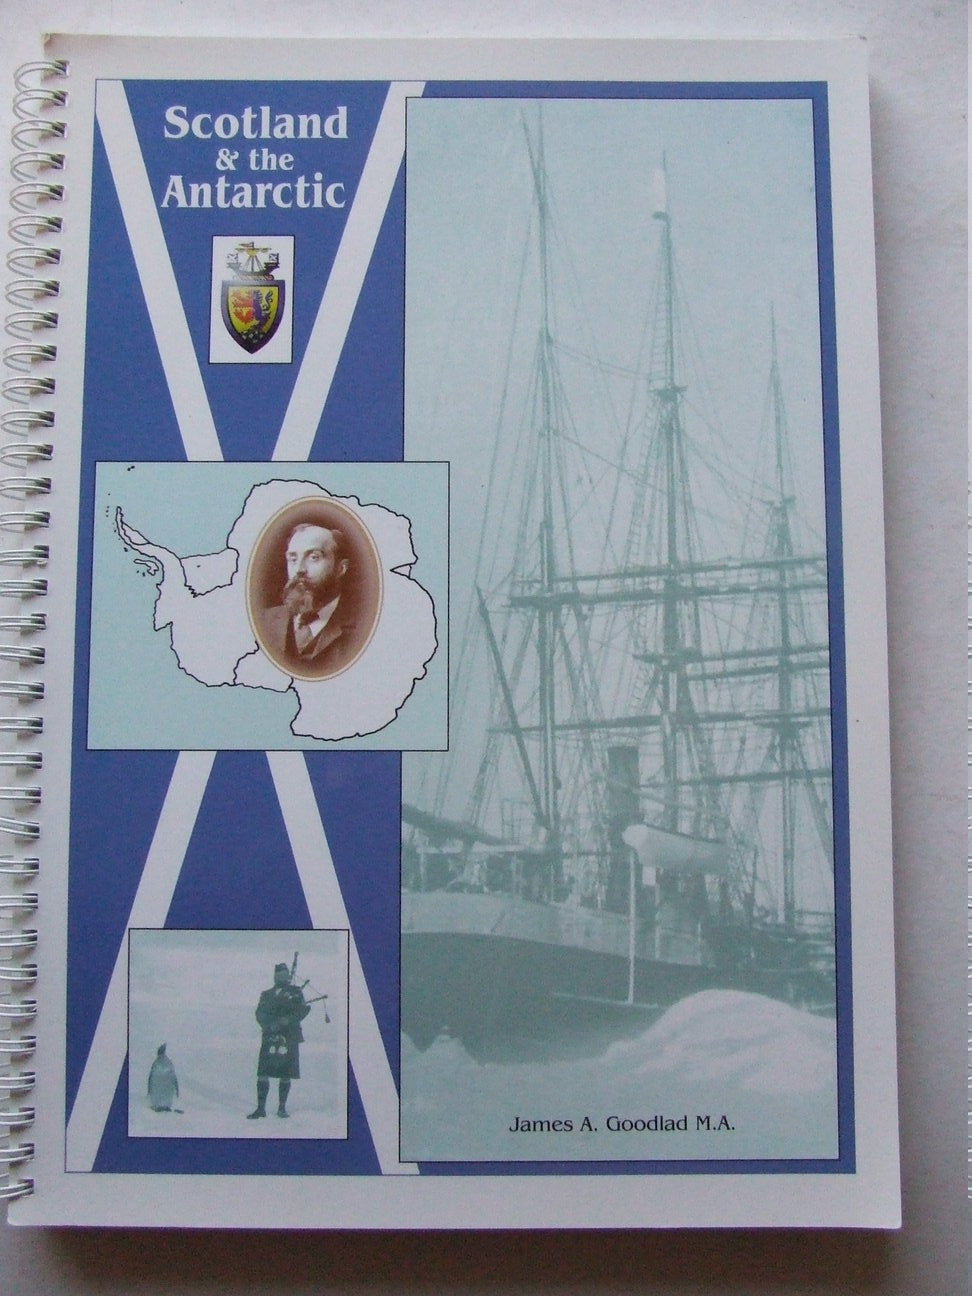 Scotland and the Antarctic